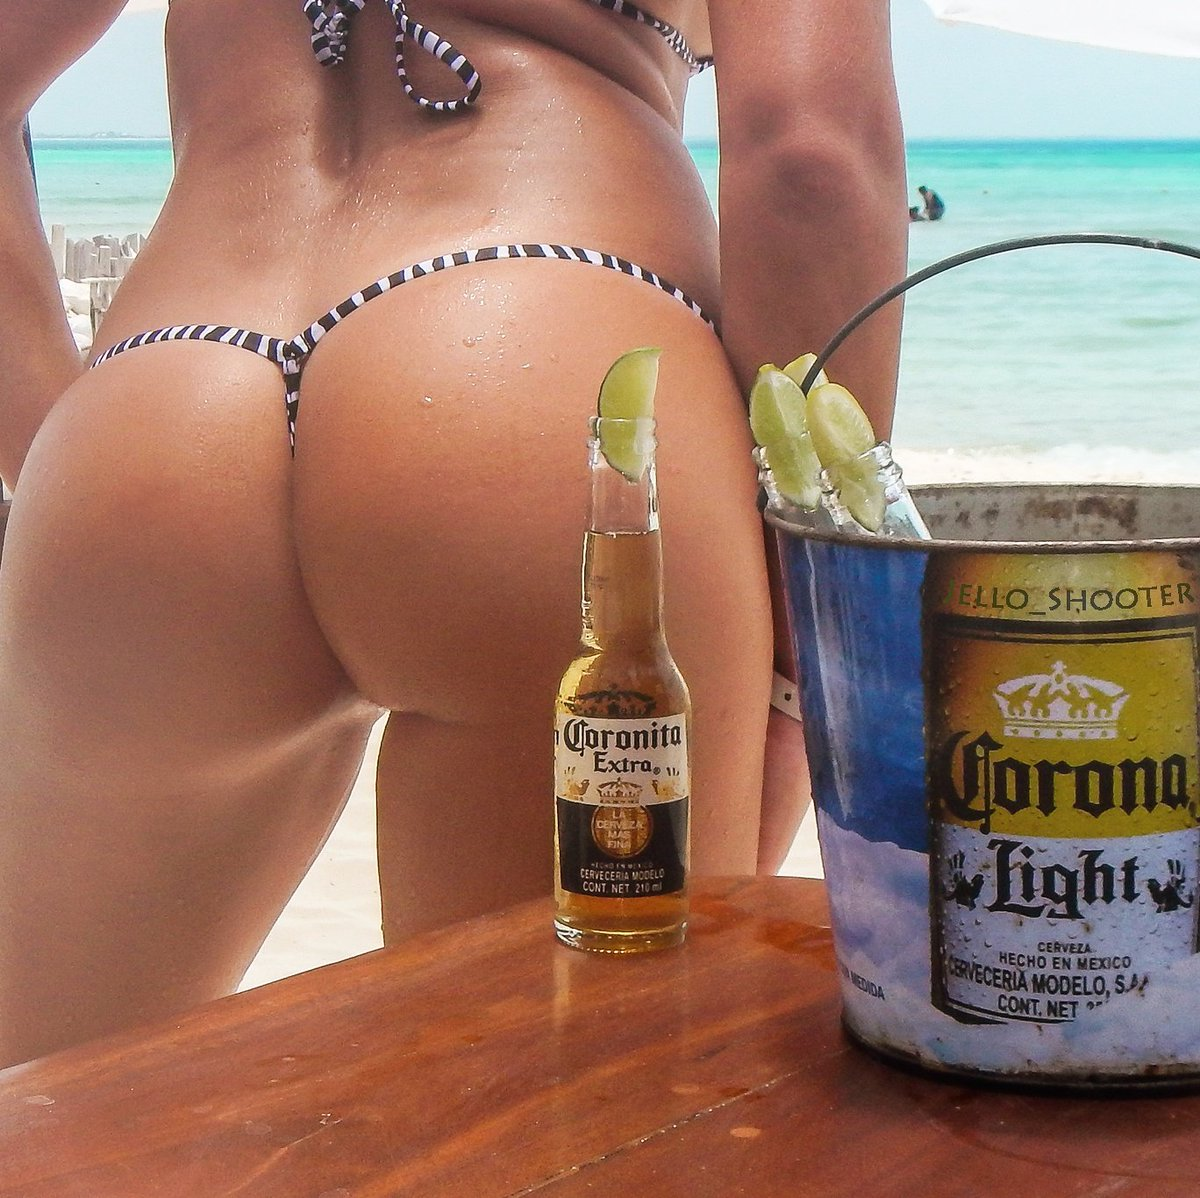 Corona Puts Man In Hospital After Beer Bottle Shattered In His Hand